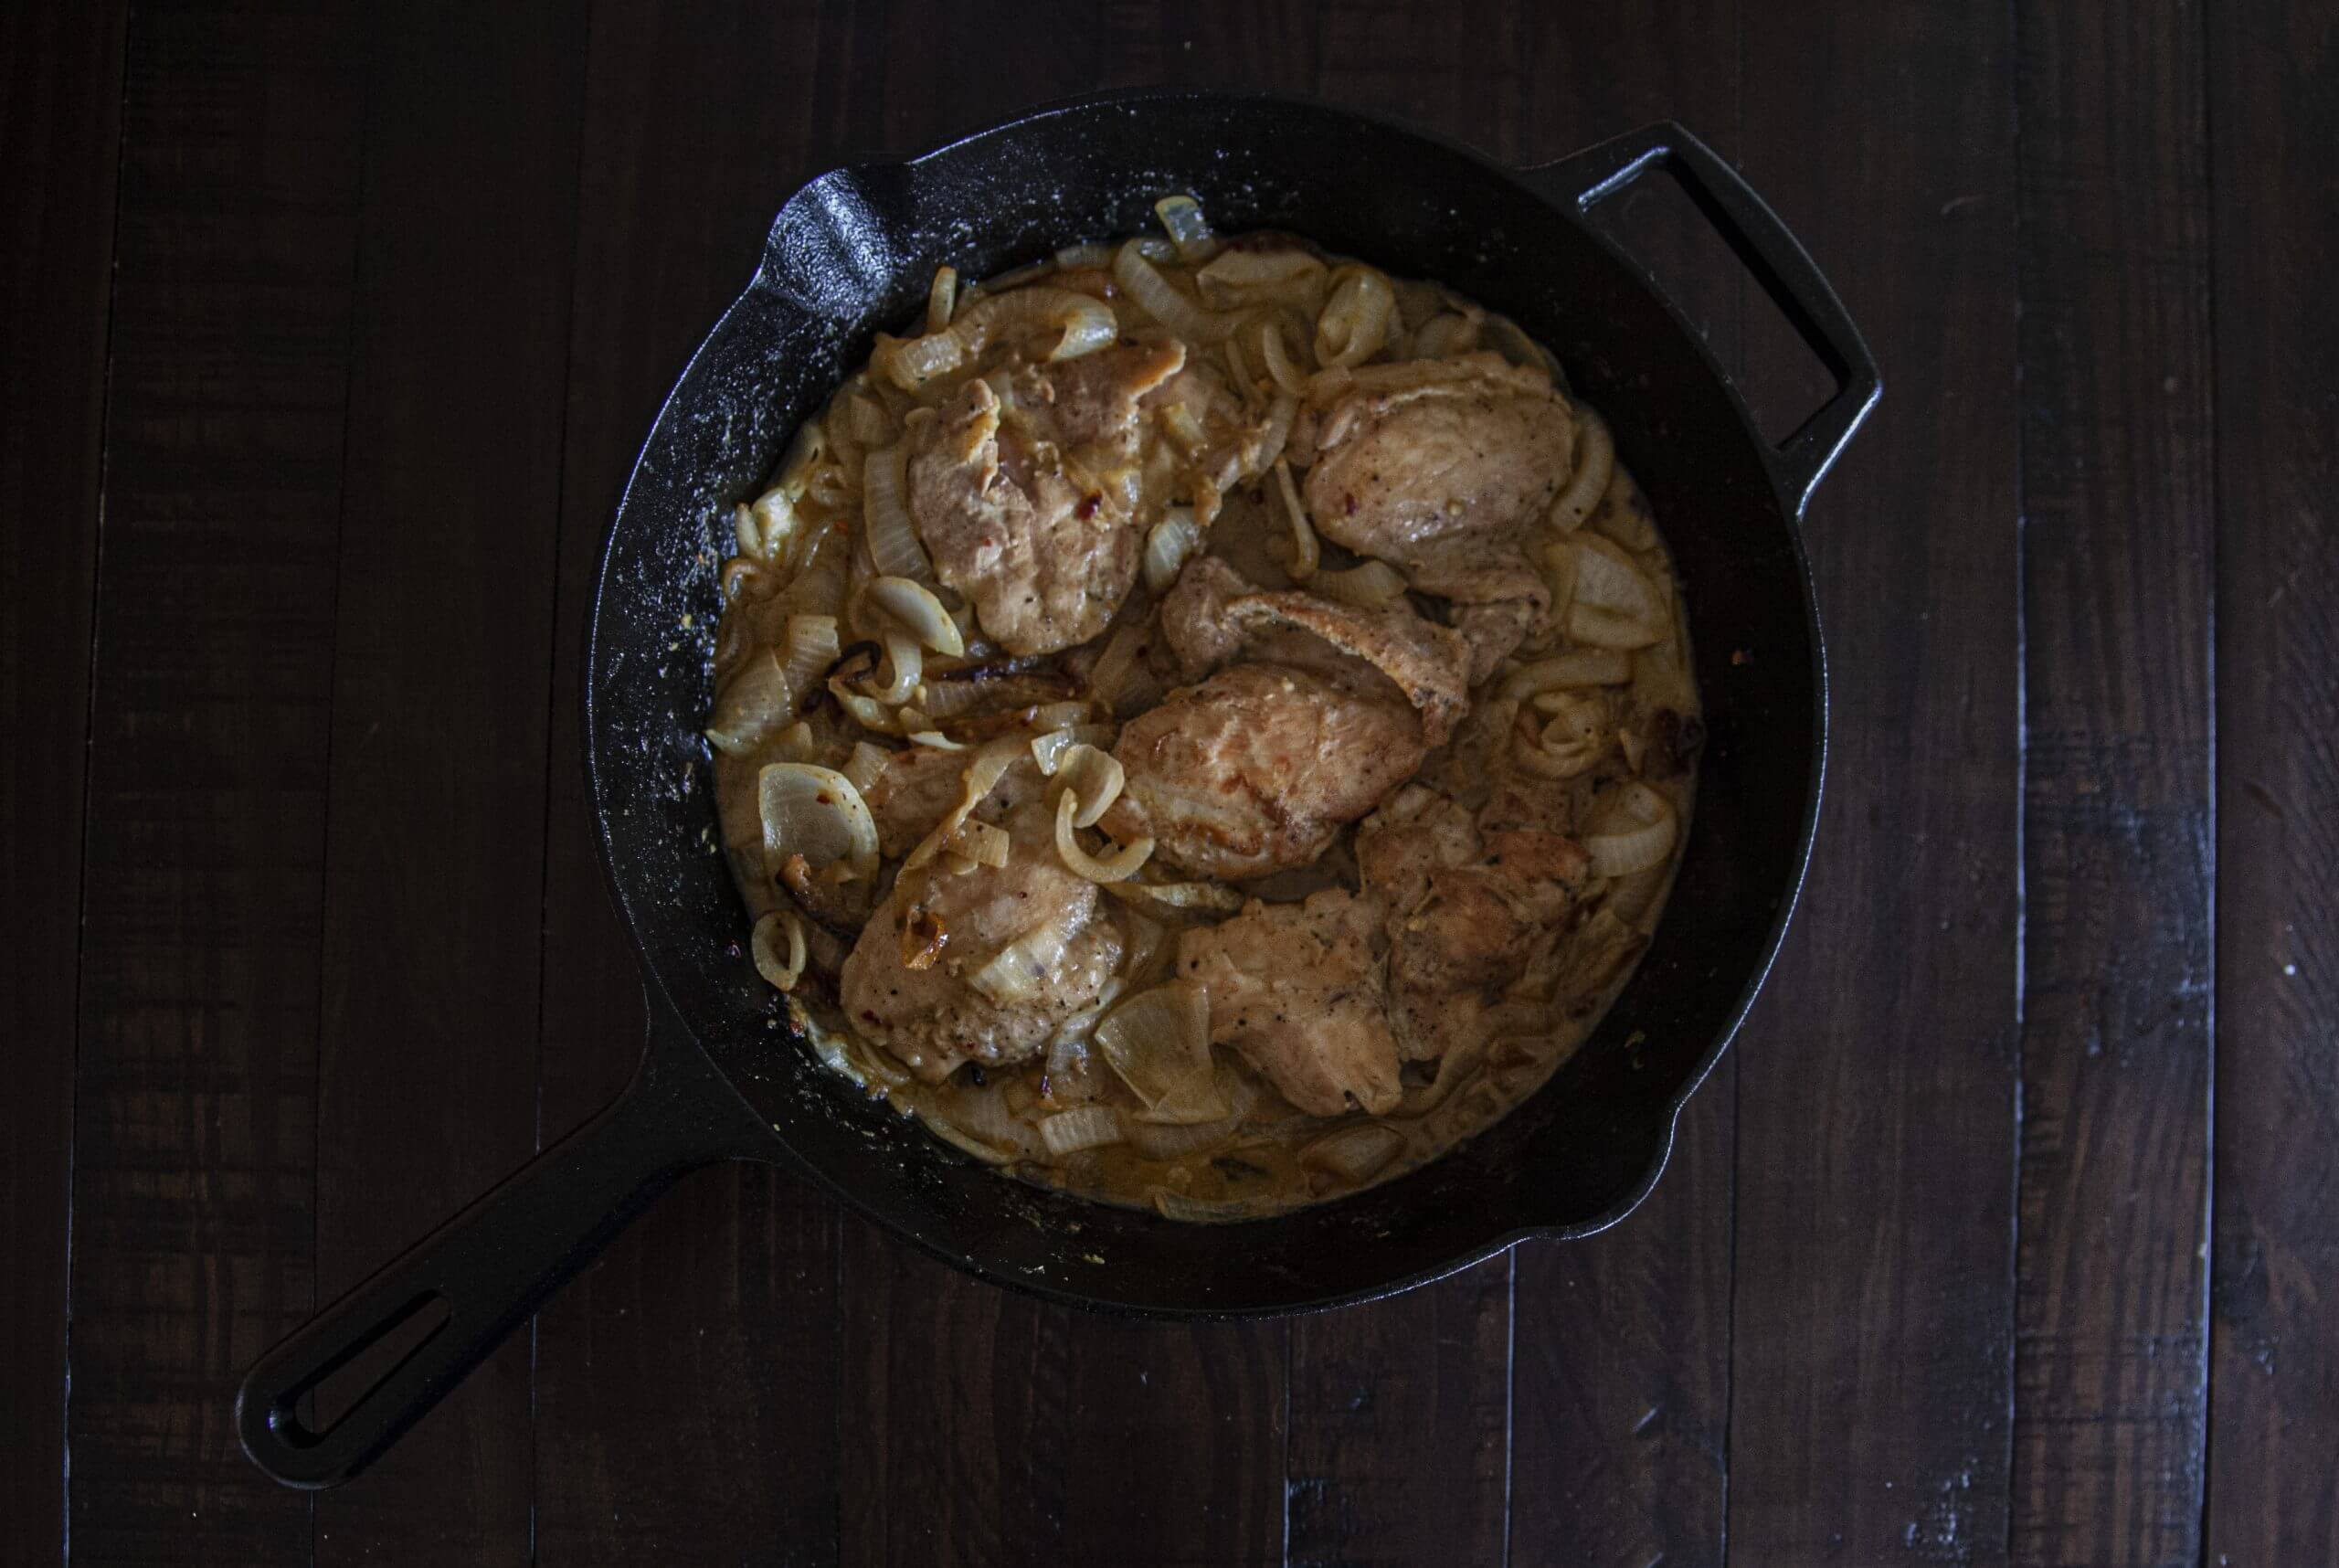 A cast iron skillet holding chicken thighs and caramelized onions.